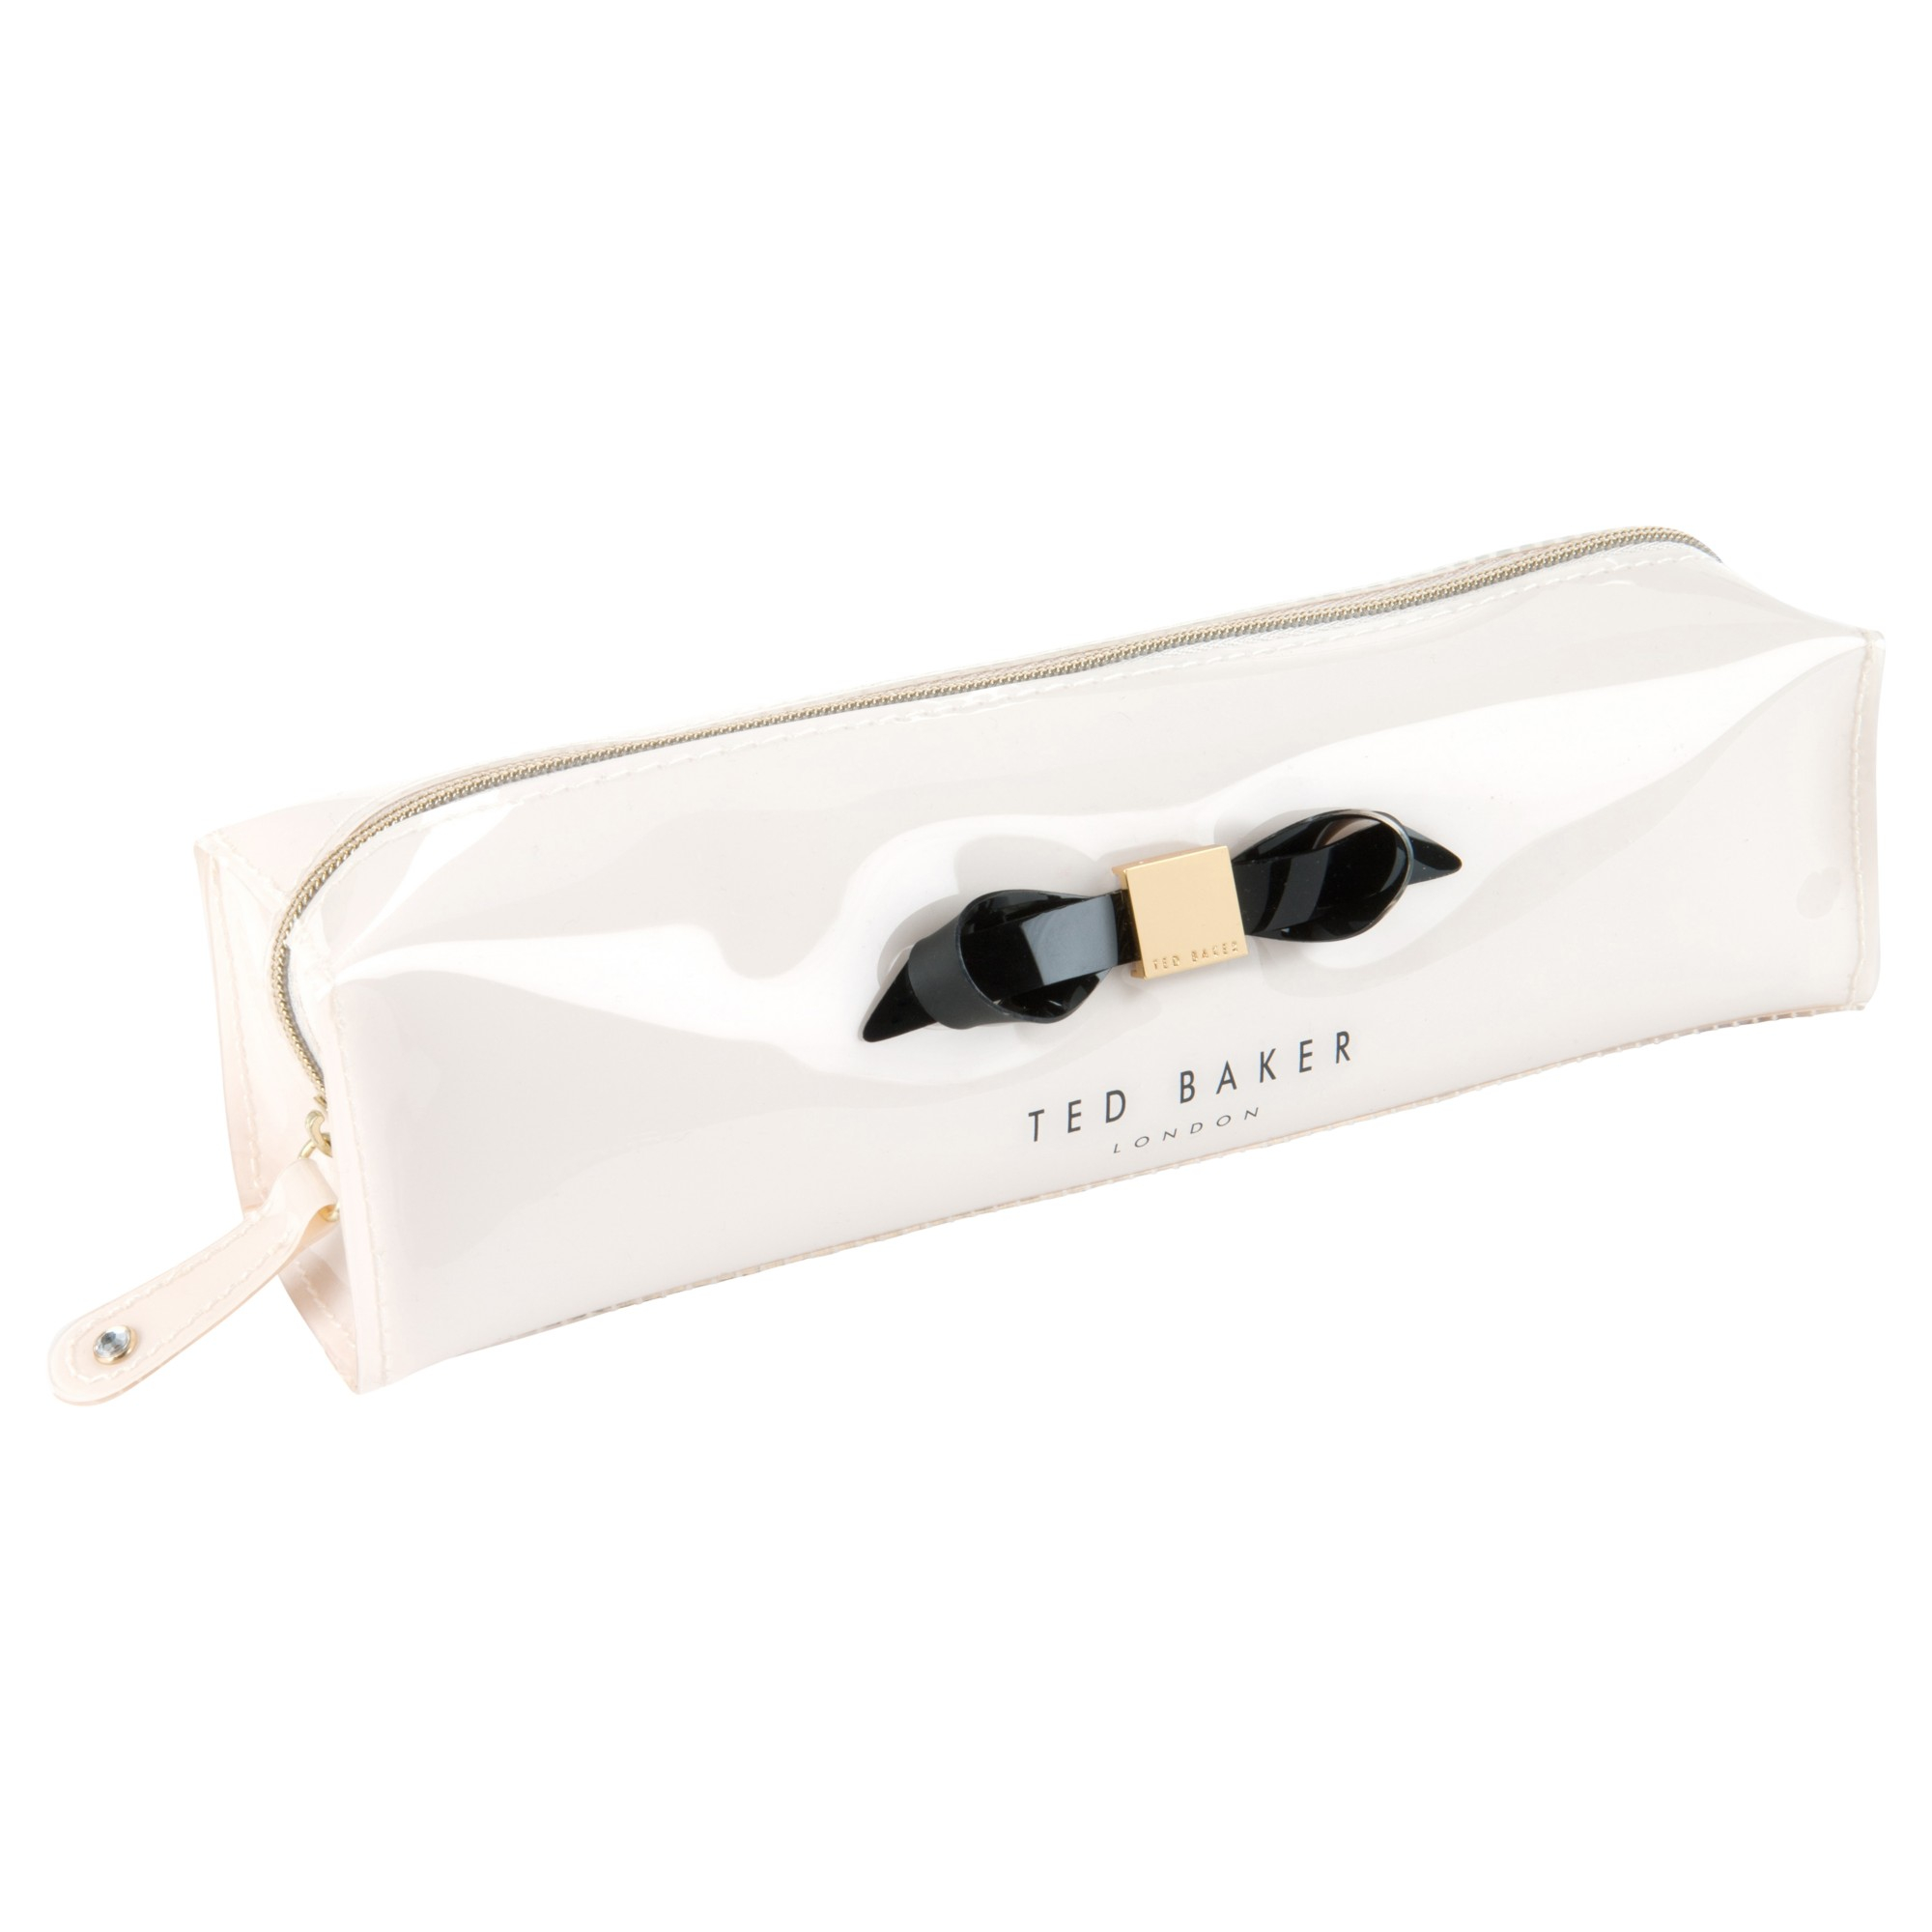 79c3239605f3e Ted Baker Britni Bow Pencil Case in White - Lyst